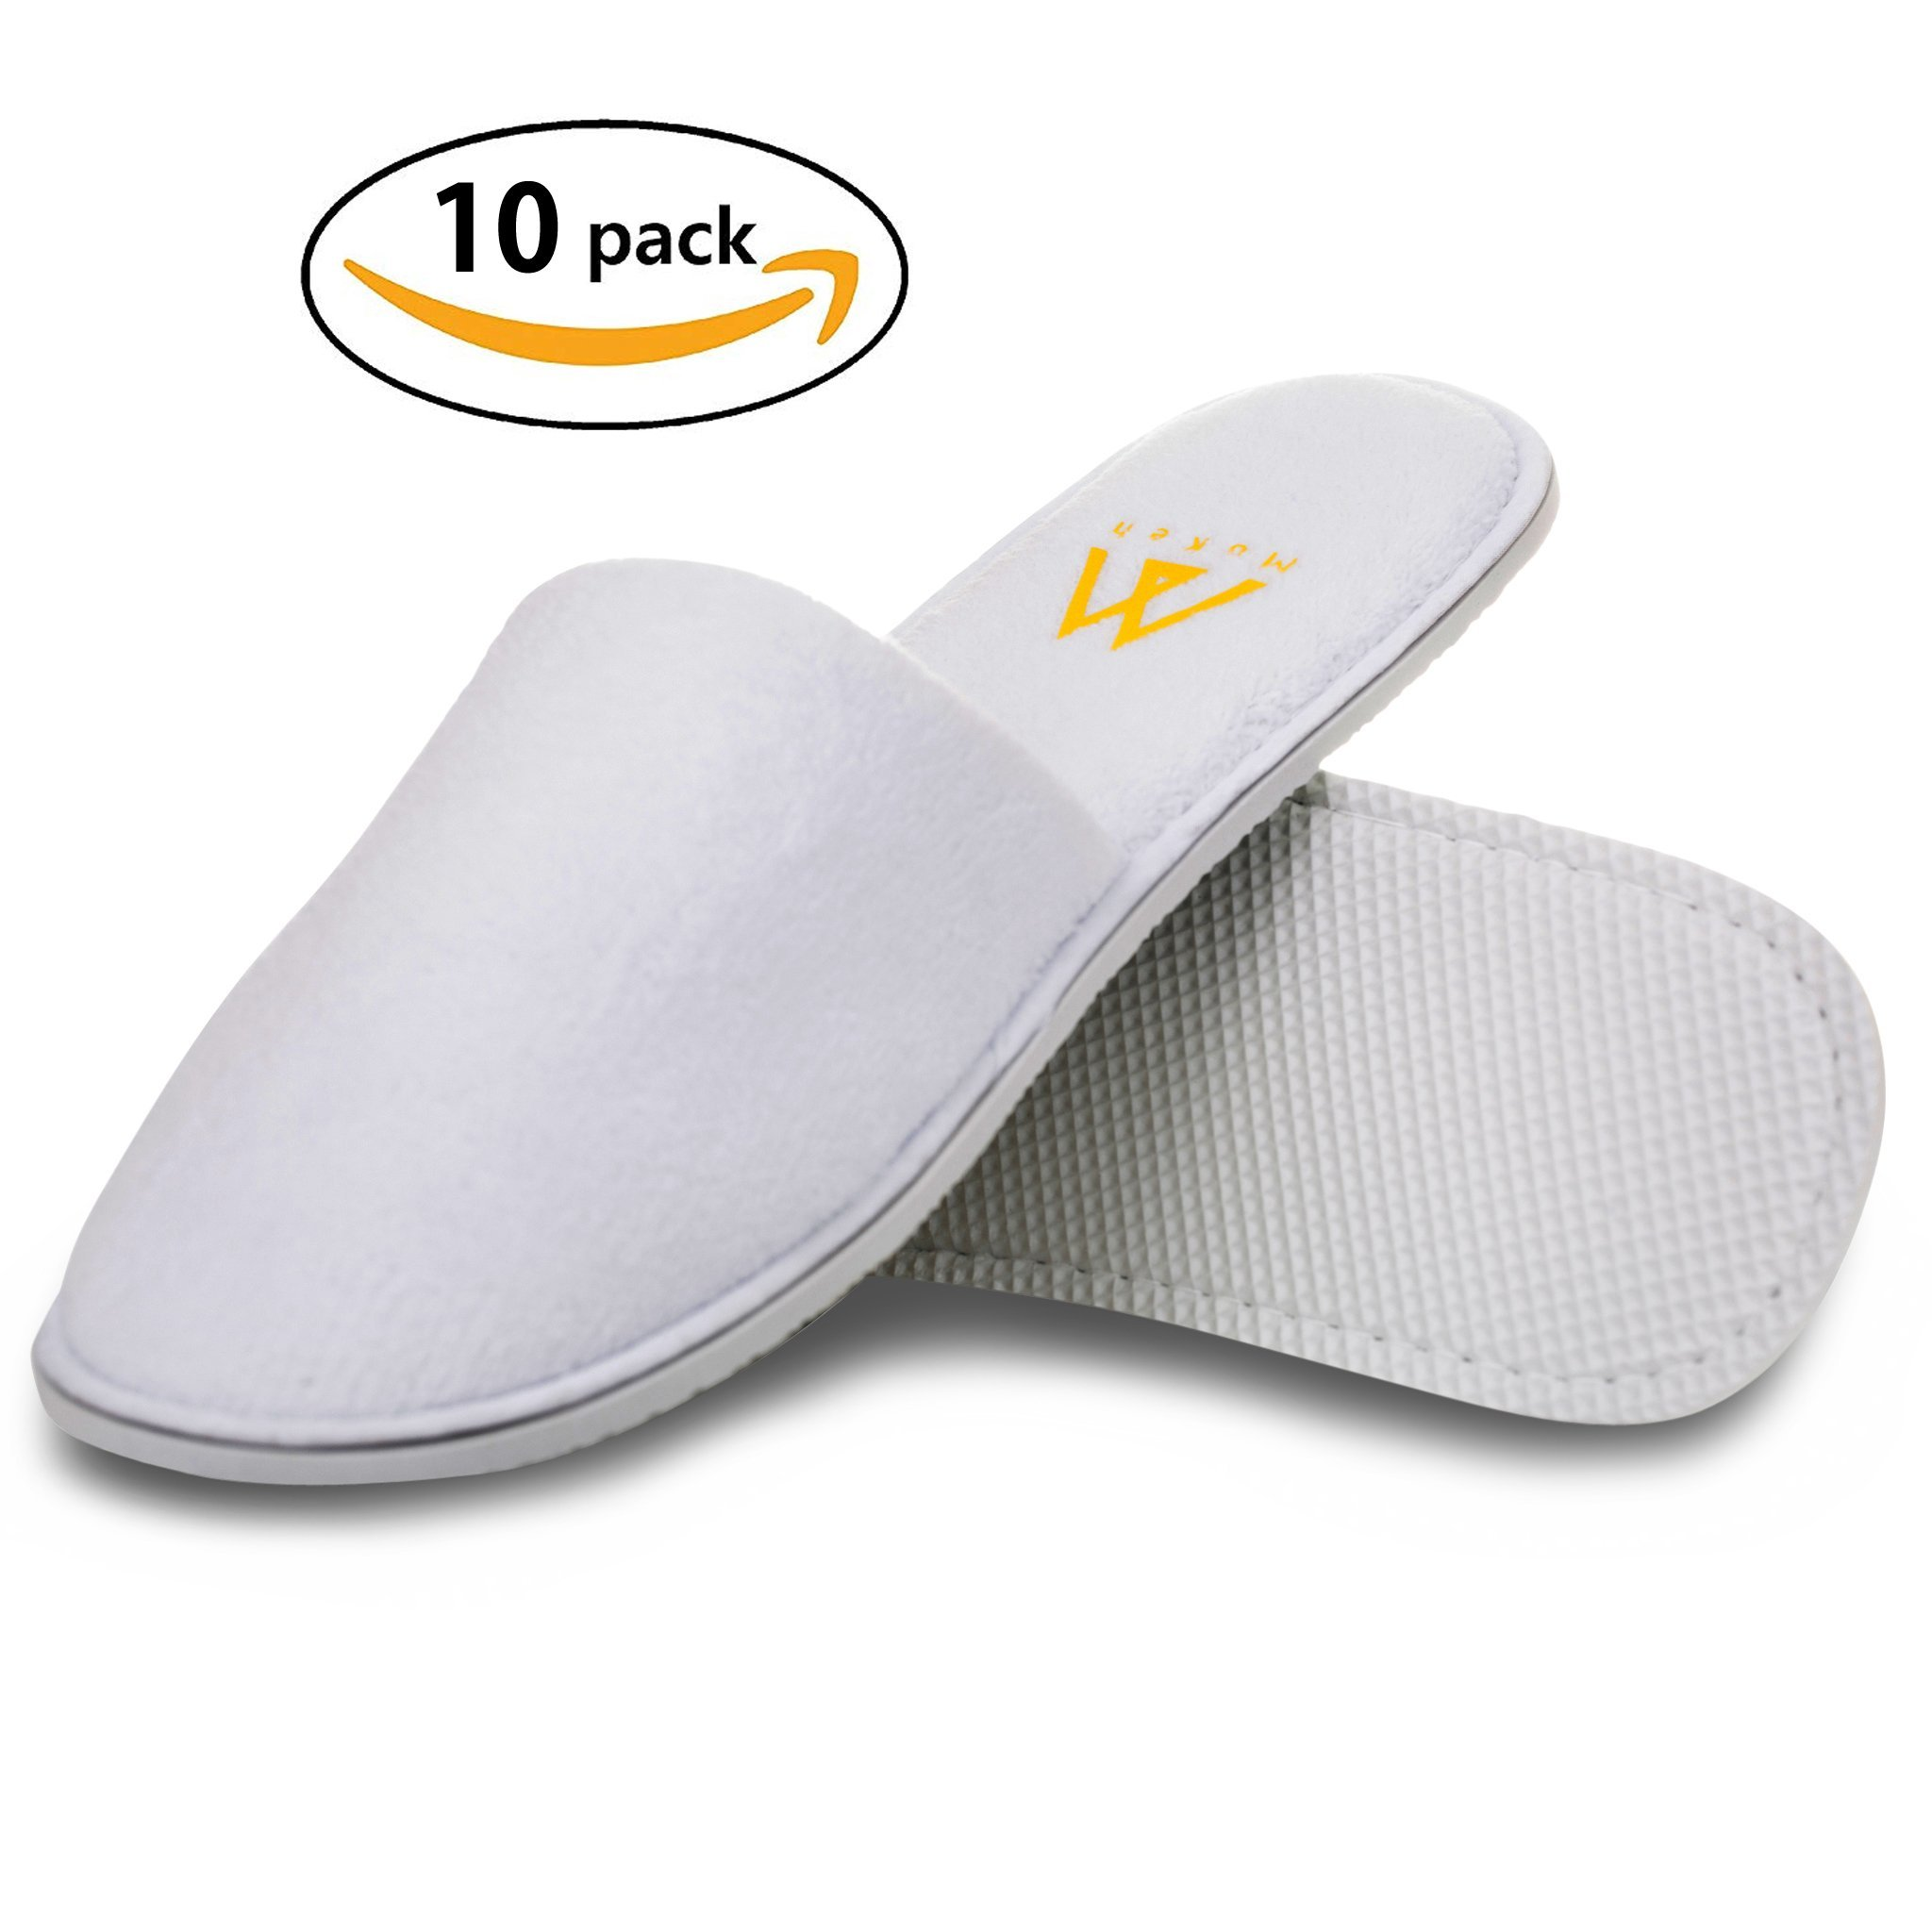 Men and Women disposable Closed Toe Spa Slippers Pack of 10 Pairs (5 Men's & 5 Women's pairs) – Fluffy Coral Fleece Indoor Hotel Slippers for Women and Men and Home Guests